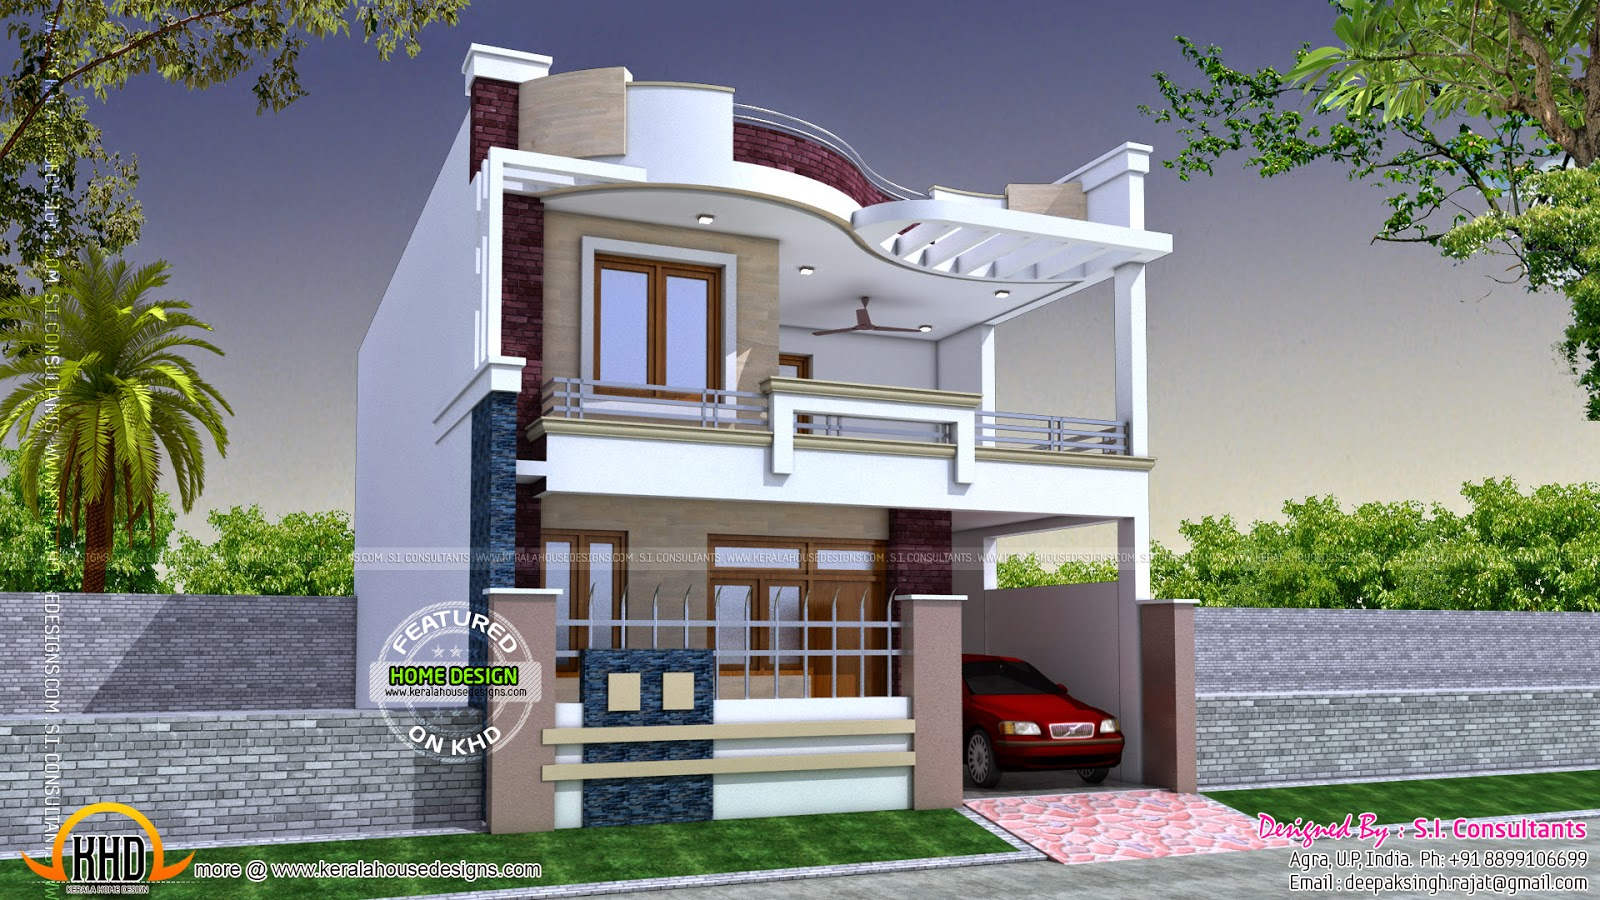 Modern indian home design kerala home design and floor plans for Indian house plans for free